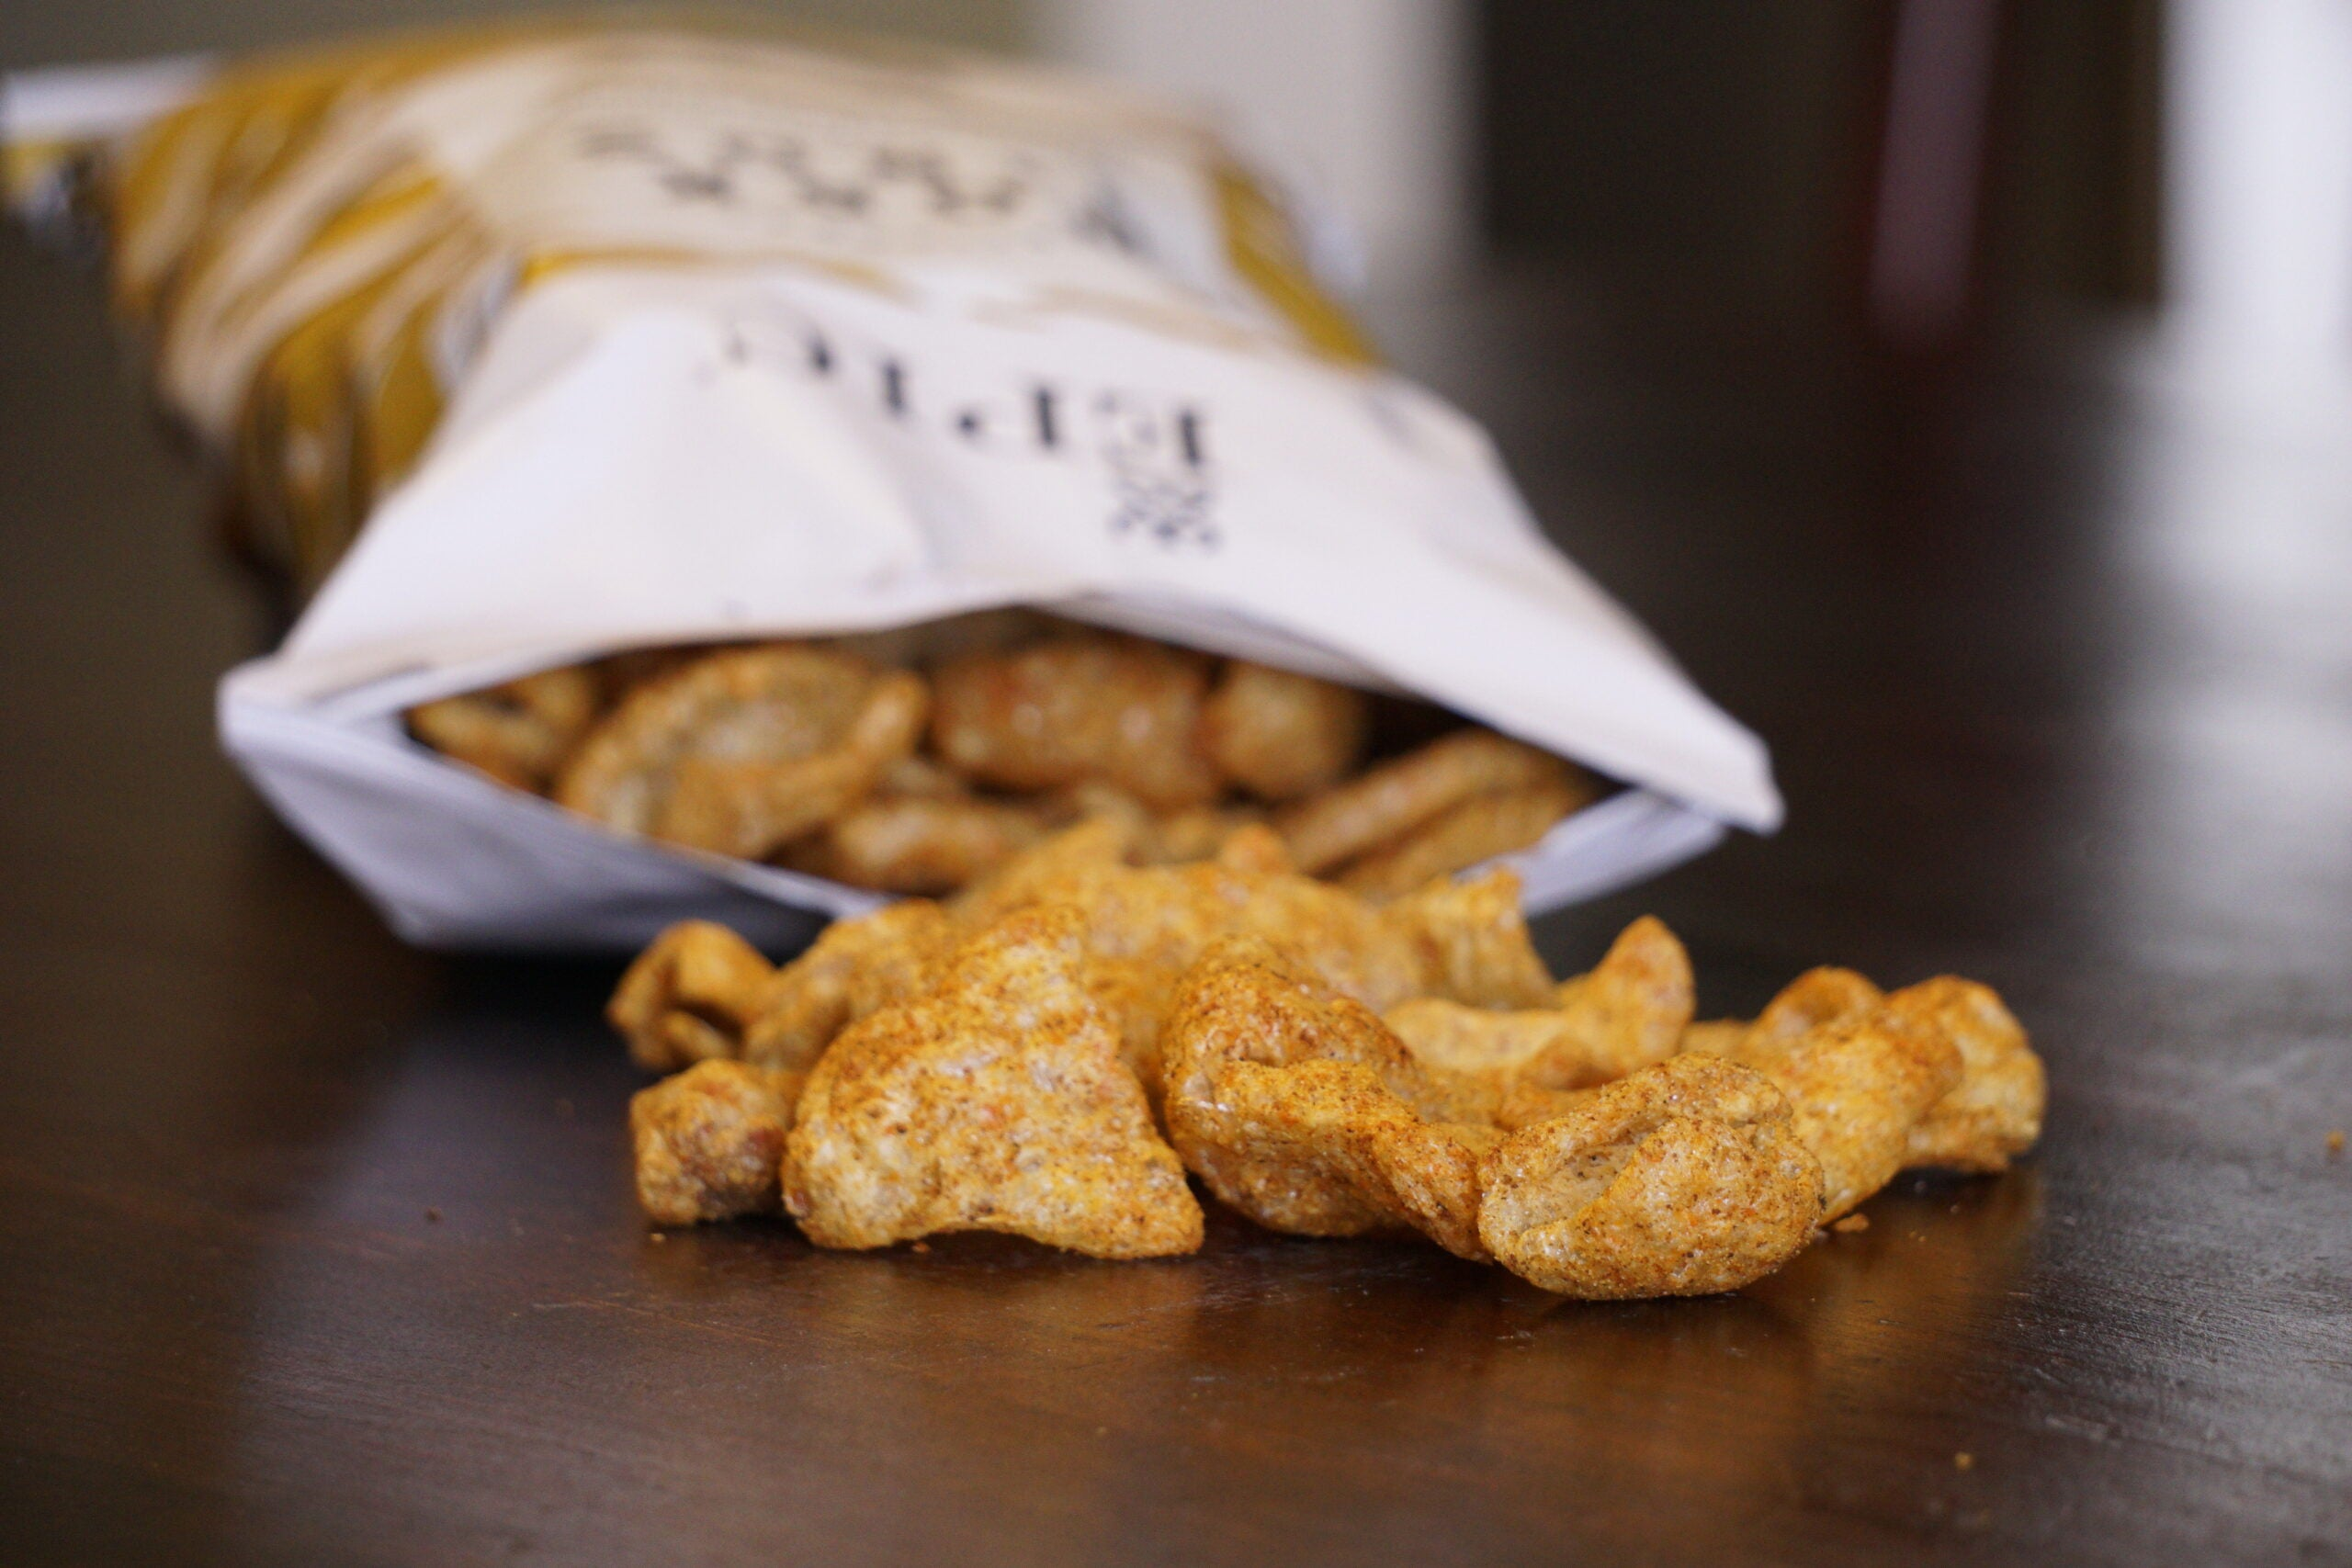 Best New Grab-N-Go Hunting Snacks for Fall